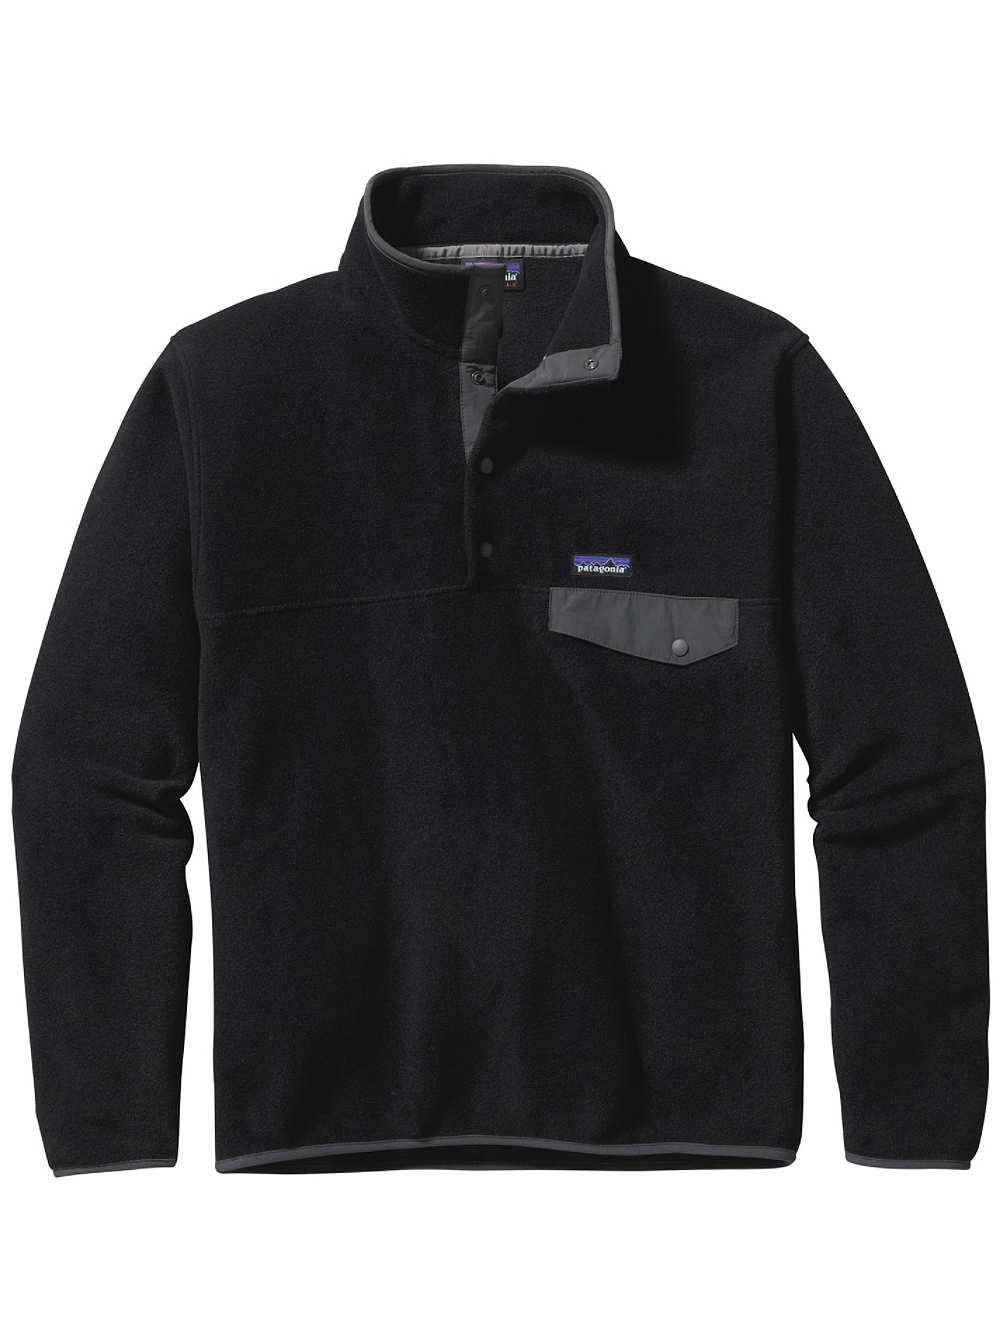 (パタゴニア)patagonia フリース Ms LW シンチラスナップT P/O 25580 [メンズ] B00OZGXS1S XL|Black/Forge Grey Black/Forge Grey XL